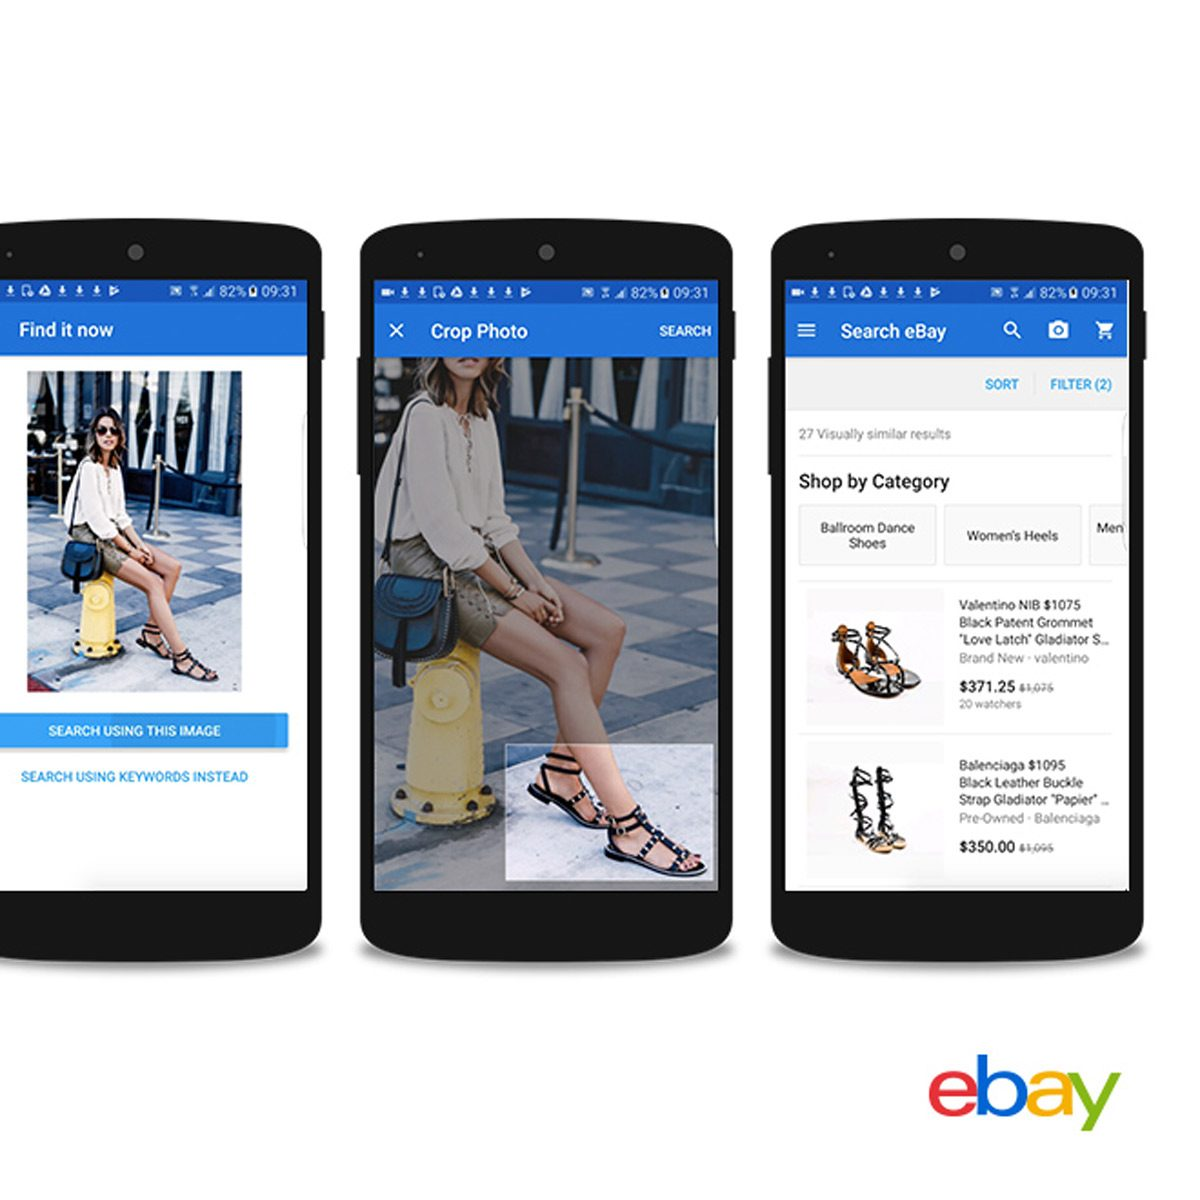 Sofa Workshop Ebay Outlet 12 Ways To Use Your Smartphone In Your Home That You Never Knew